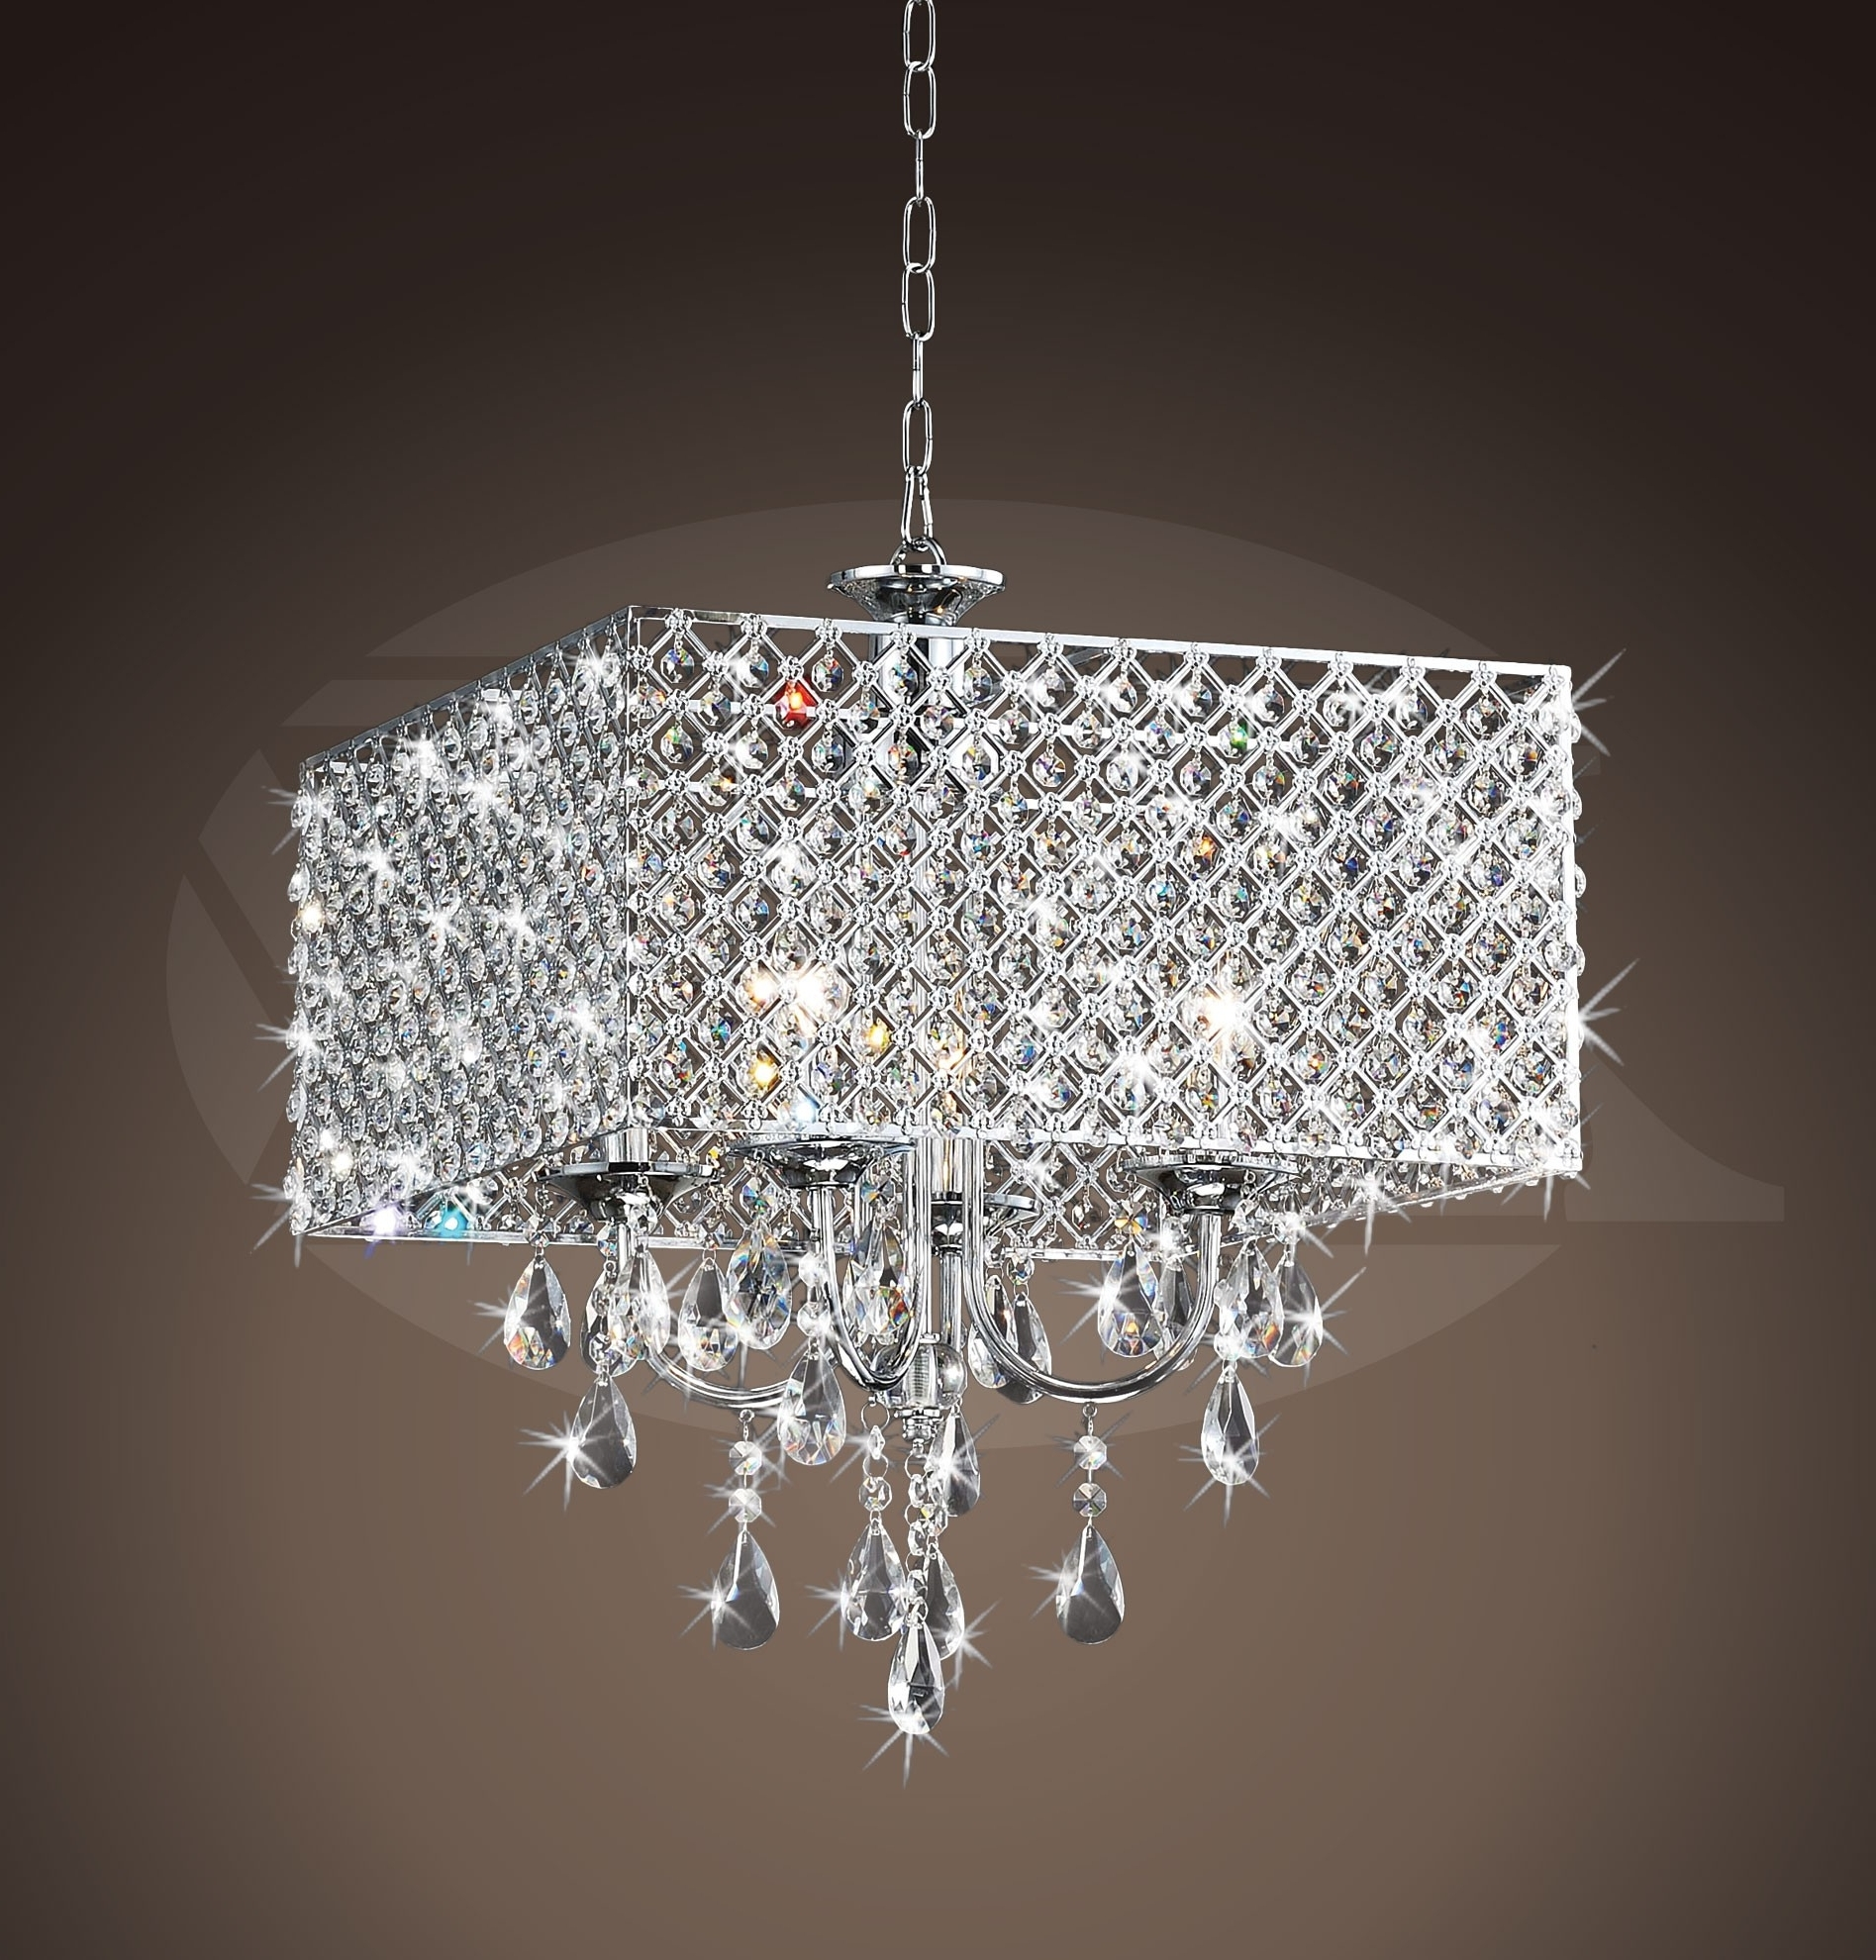 """Best And Newest Rosemary Elegant Crystal Chrome 4 Light Square Chandelier (16""""h X 17 With Regard To 4 Light Chrome Crystal Chandeliers (View 7 of 15)"""